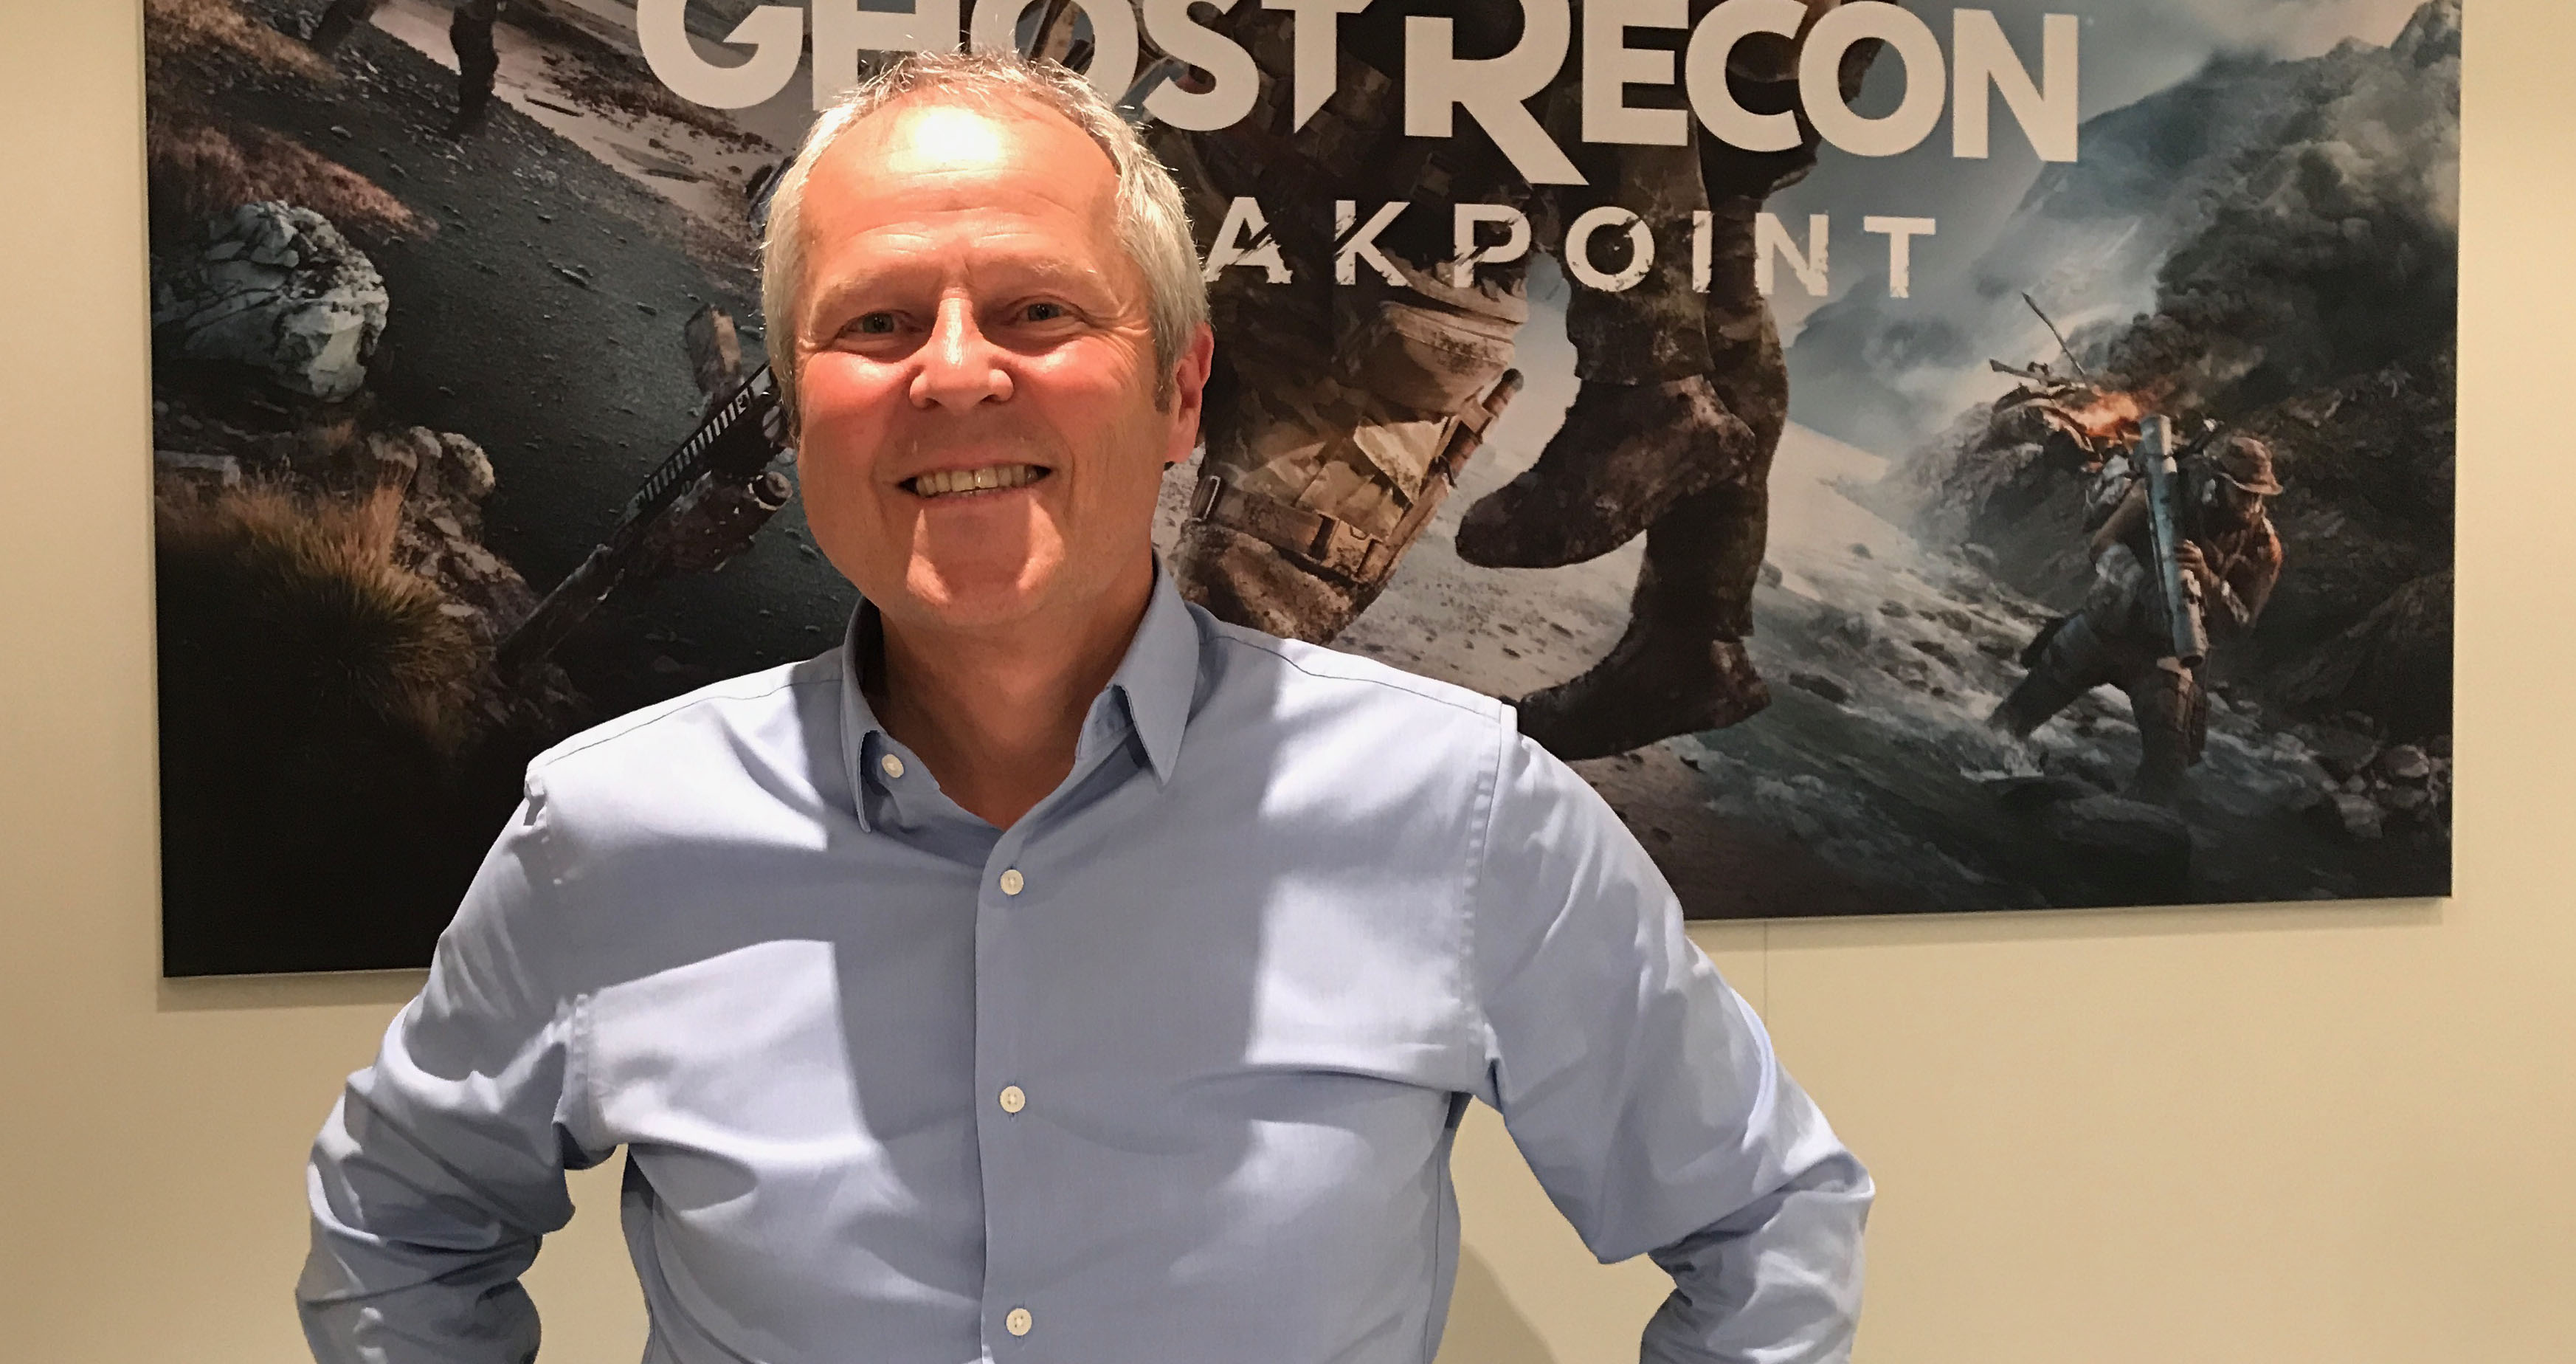 Yves Guillemot on the thin line between politics and entertainment